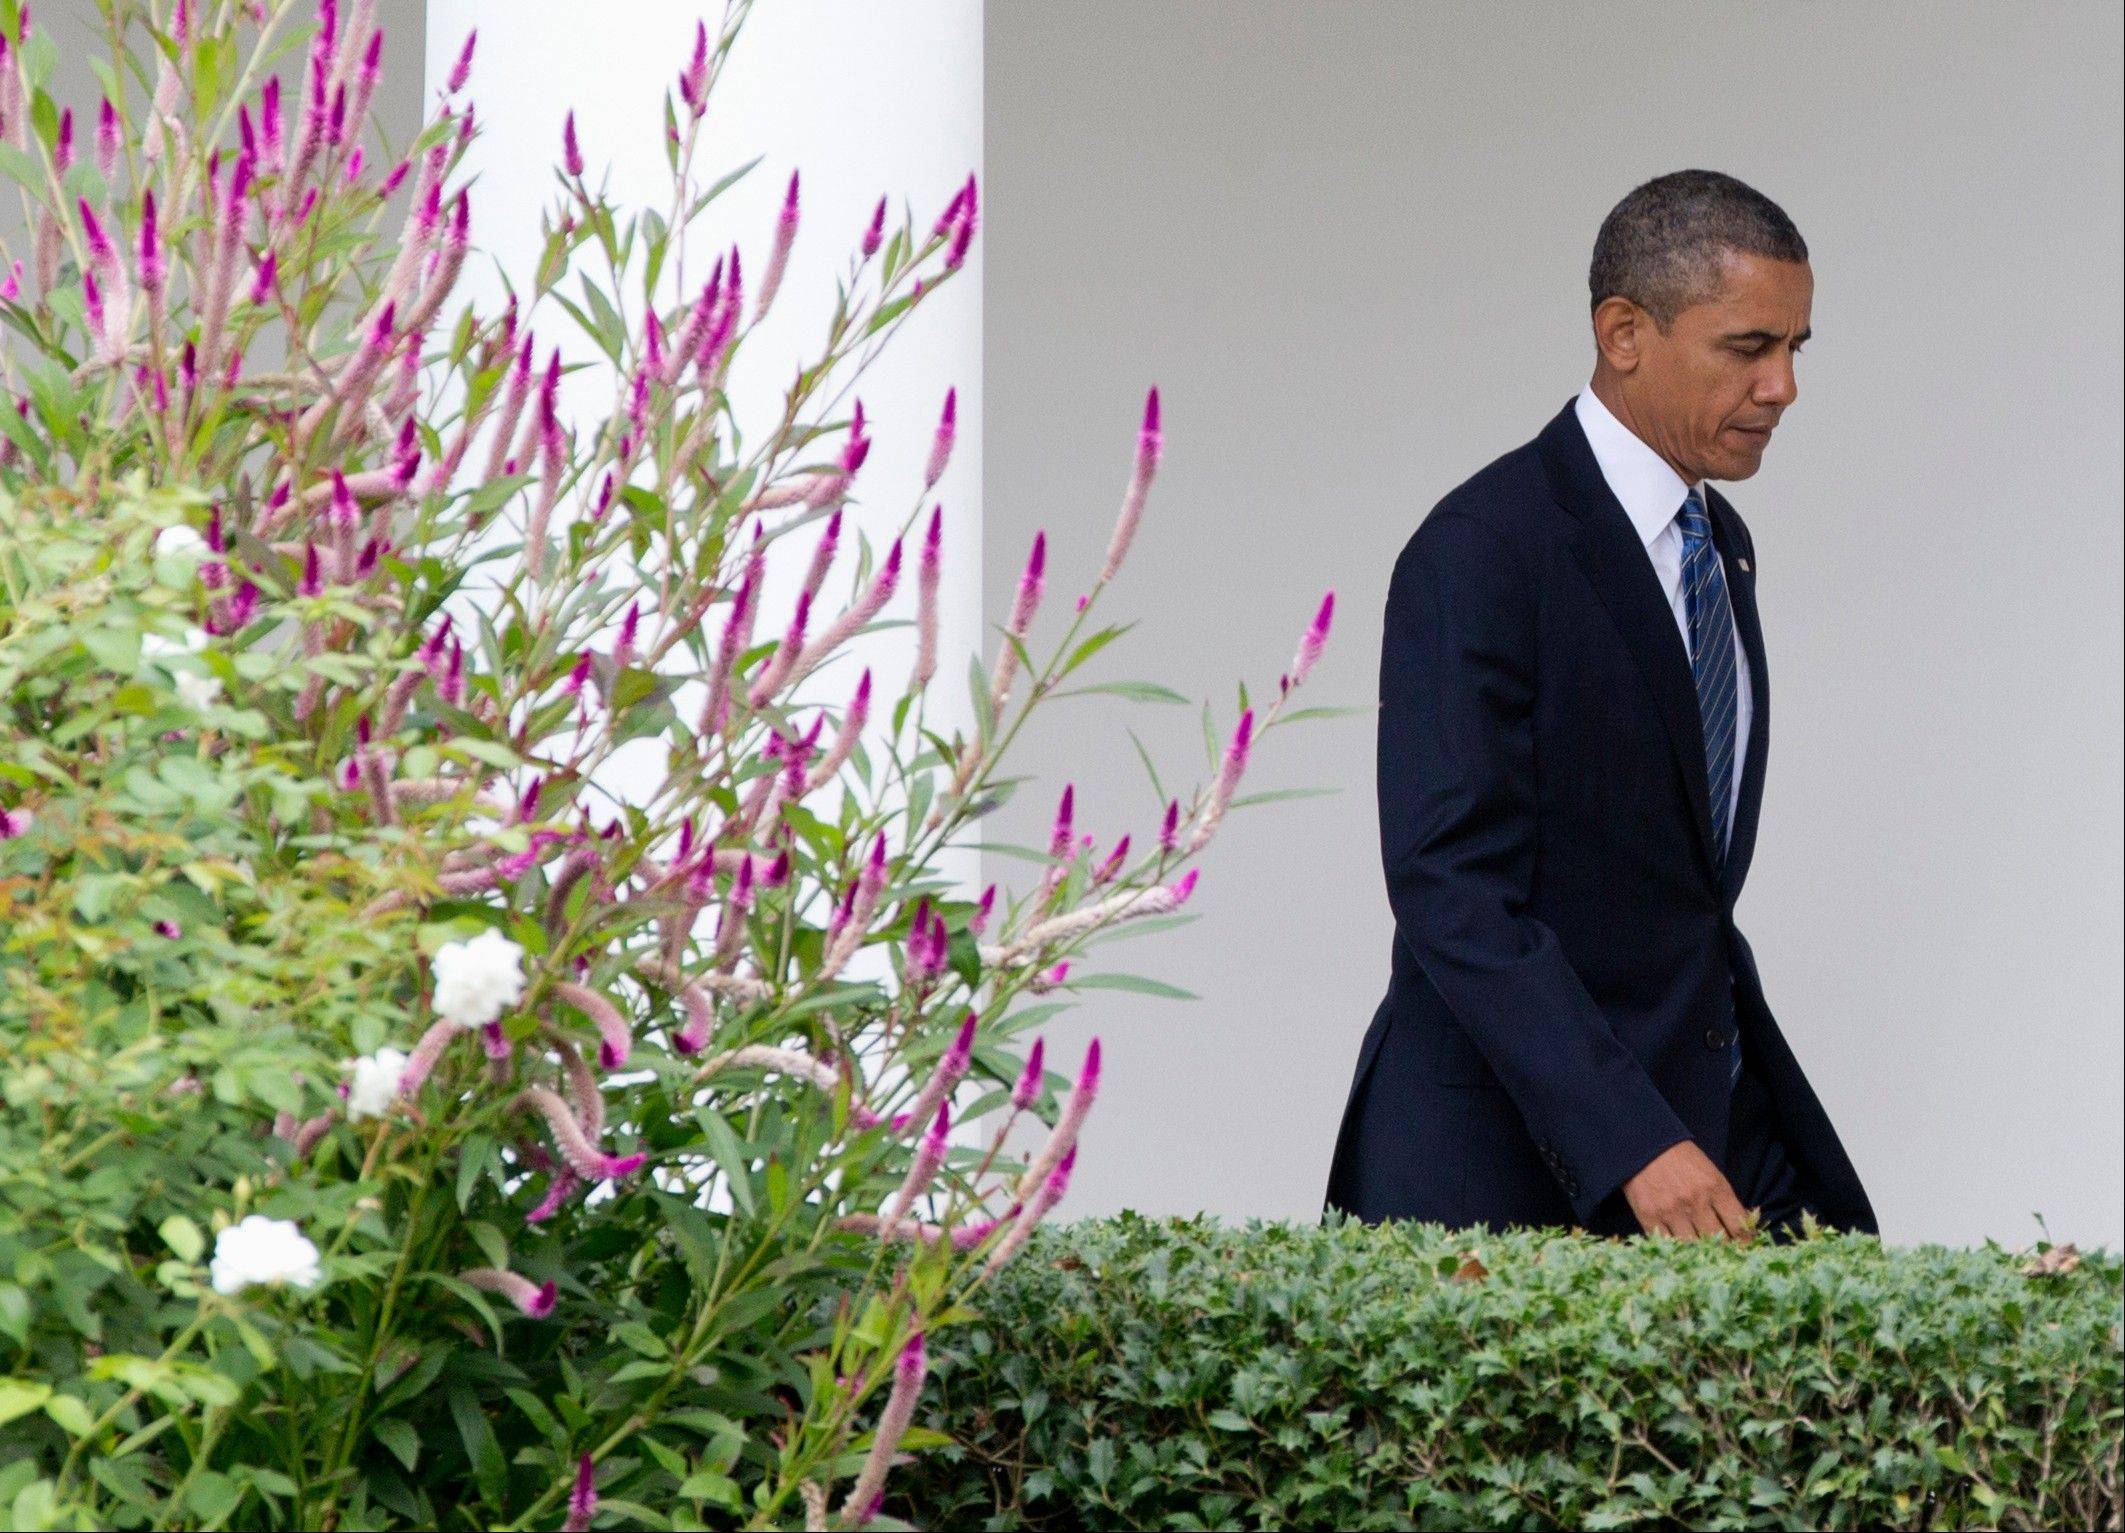 President Barack Obama walks from the Oval Office of the White House in Washington along the colonnade to join first lady Michelle Obama as they travel Monday to the United Nations General Assembly in New York.